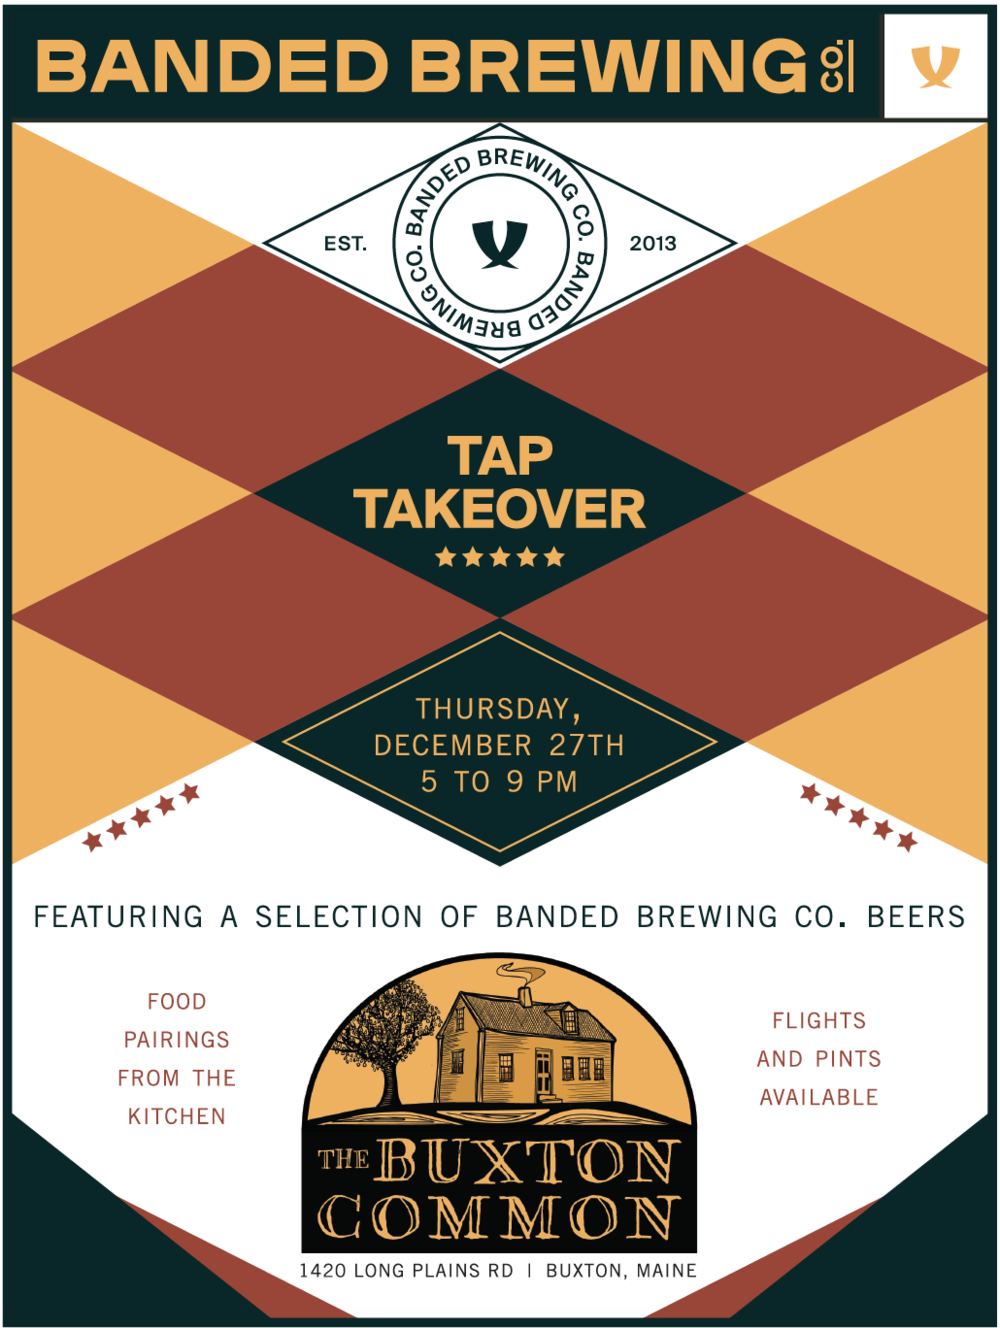 banded-brewing-tap-takeover.png